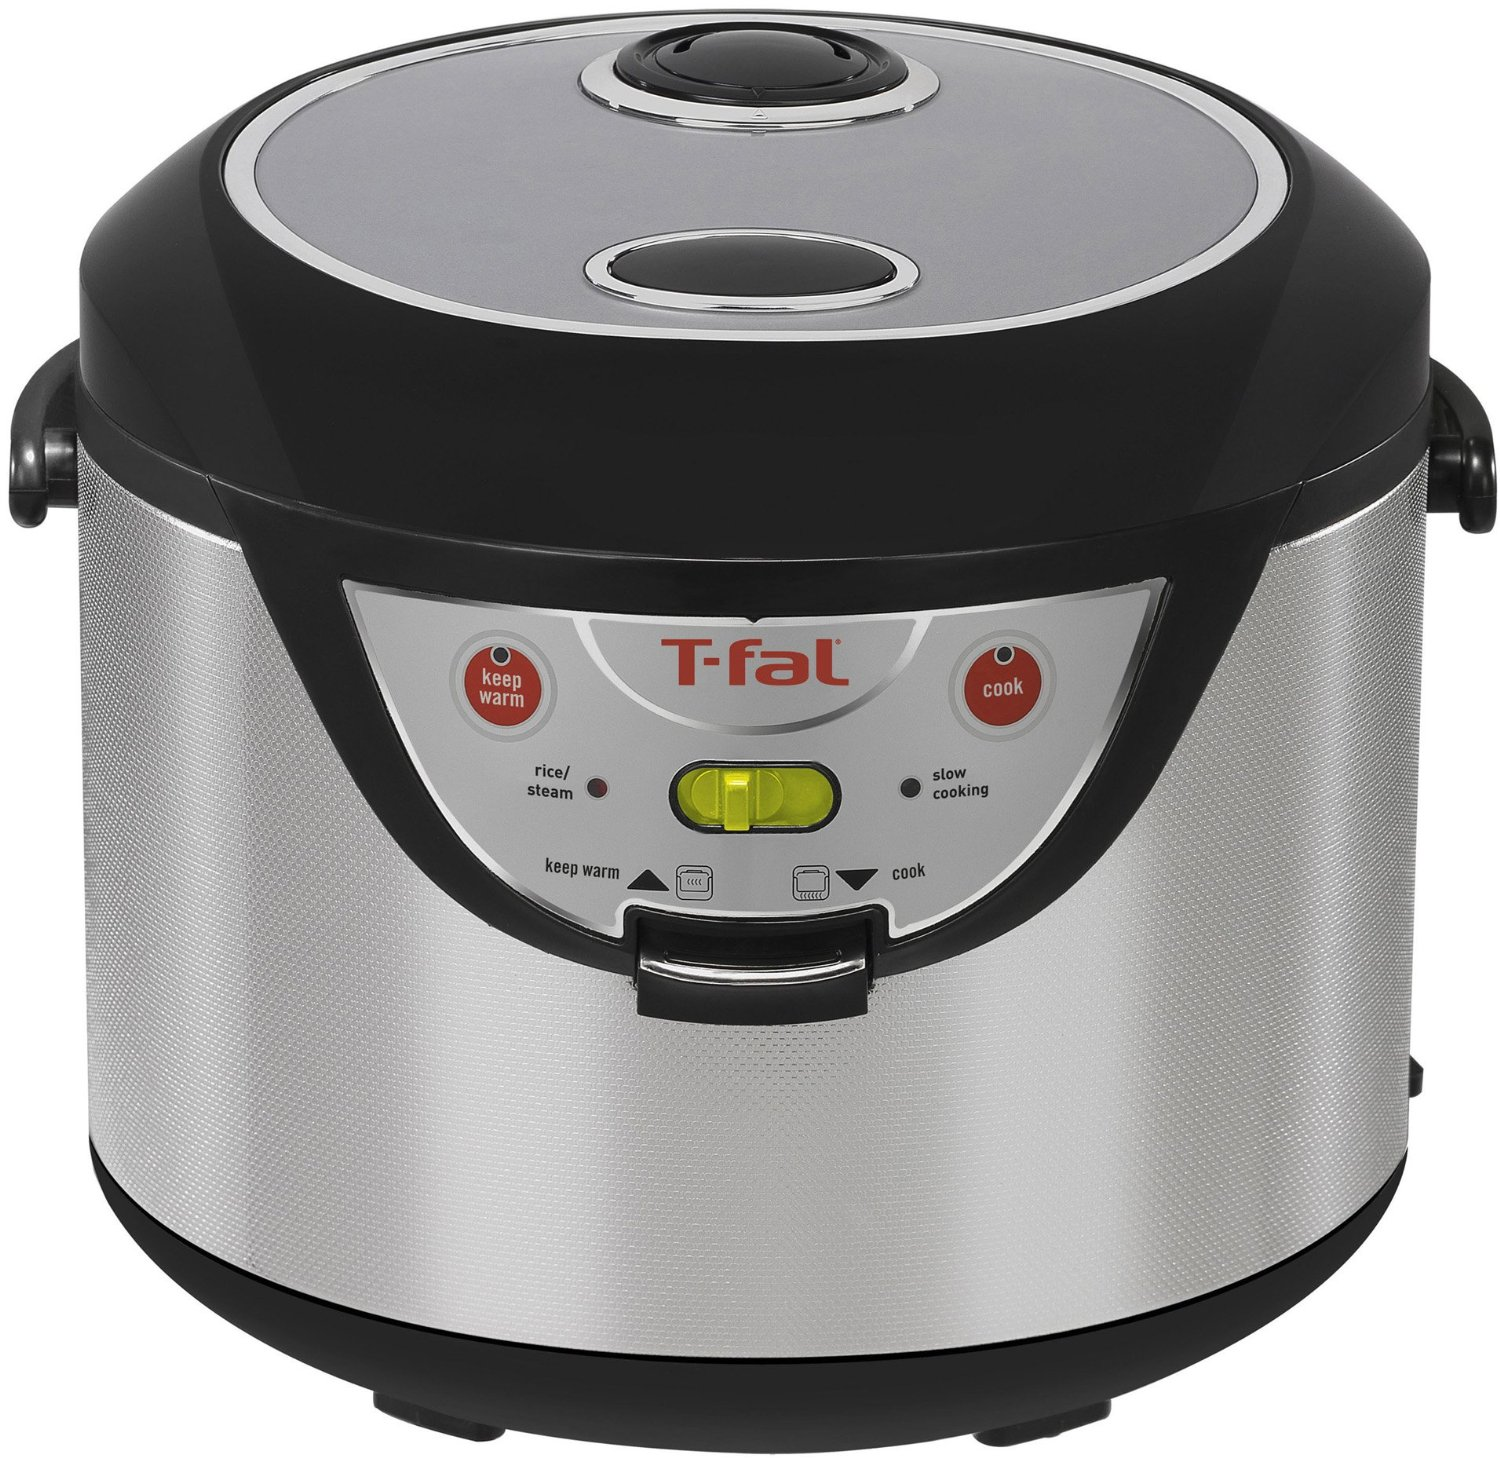 tefal rice cooker. Black Bedroom Furniture Sets. Home Design Ideas